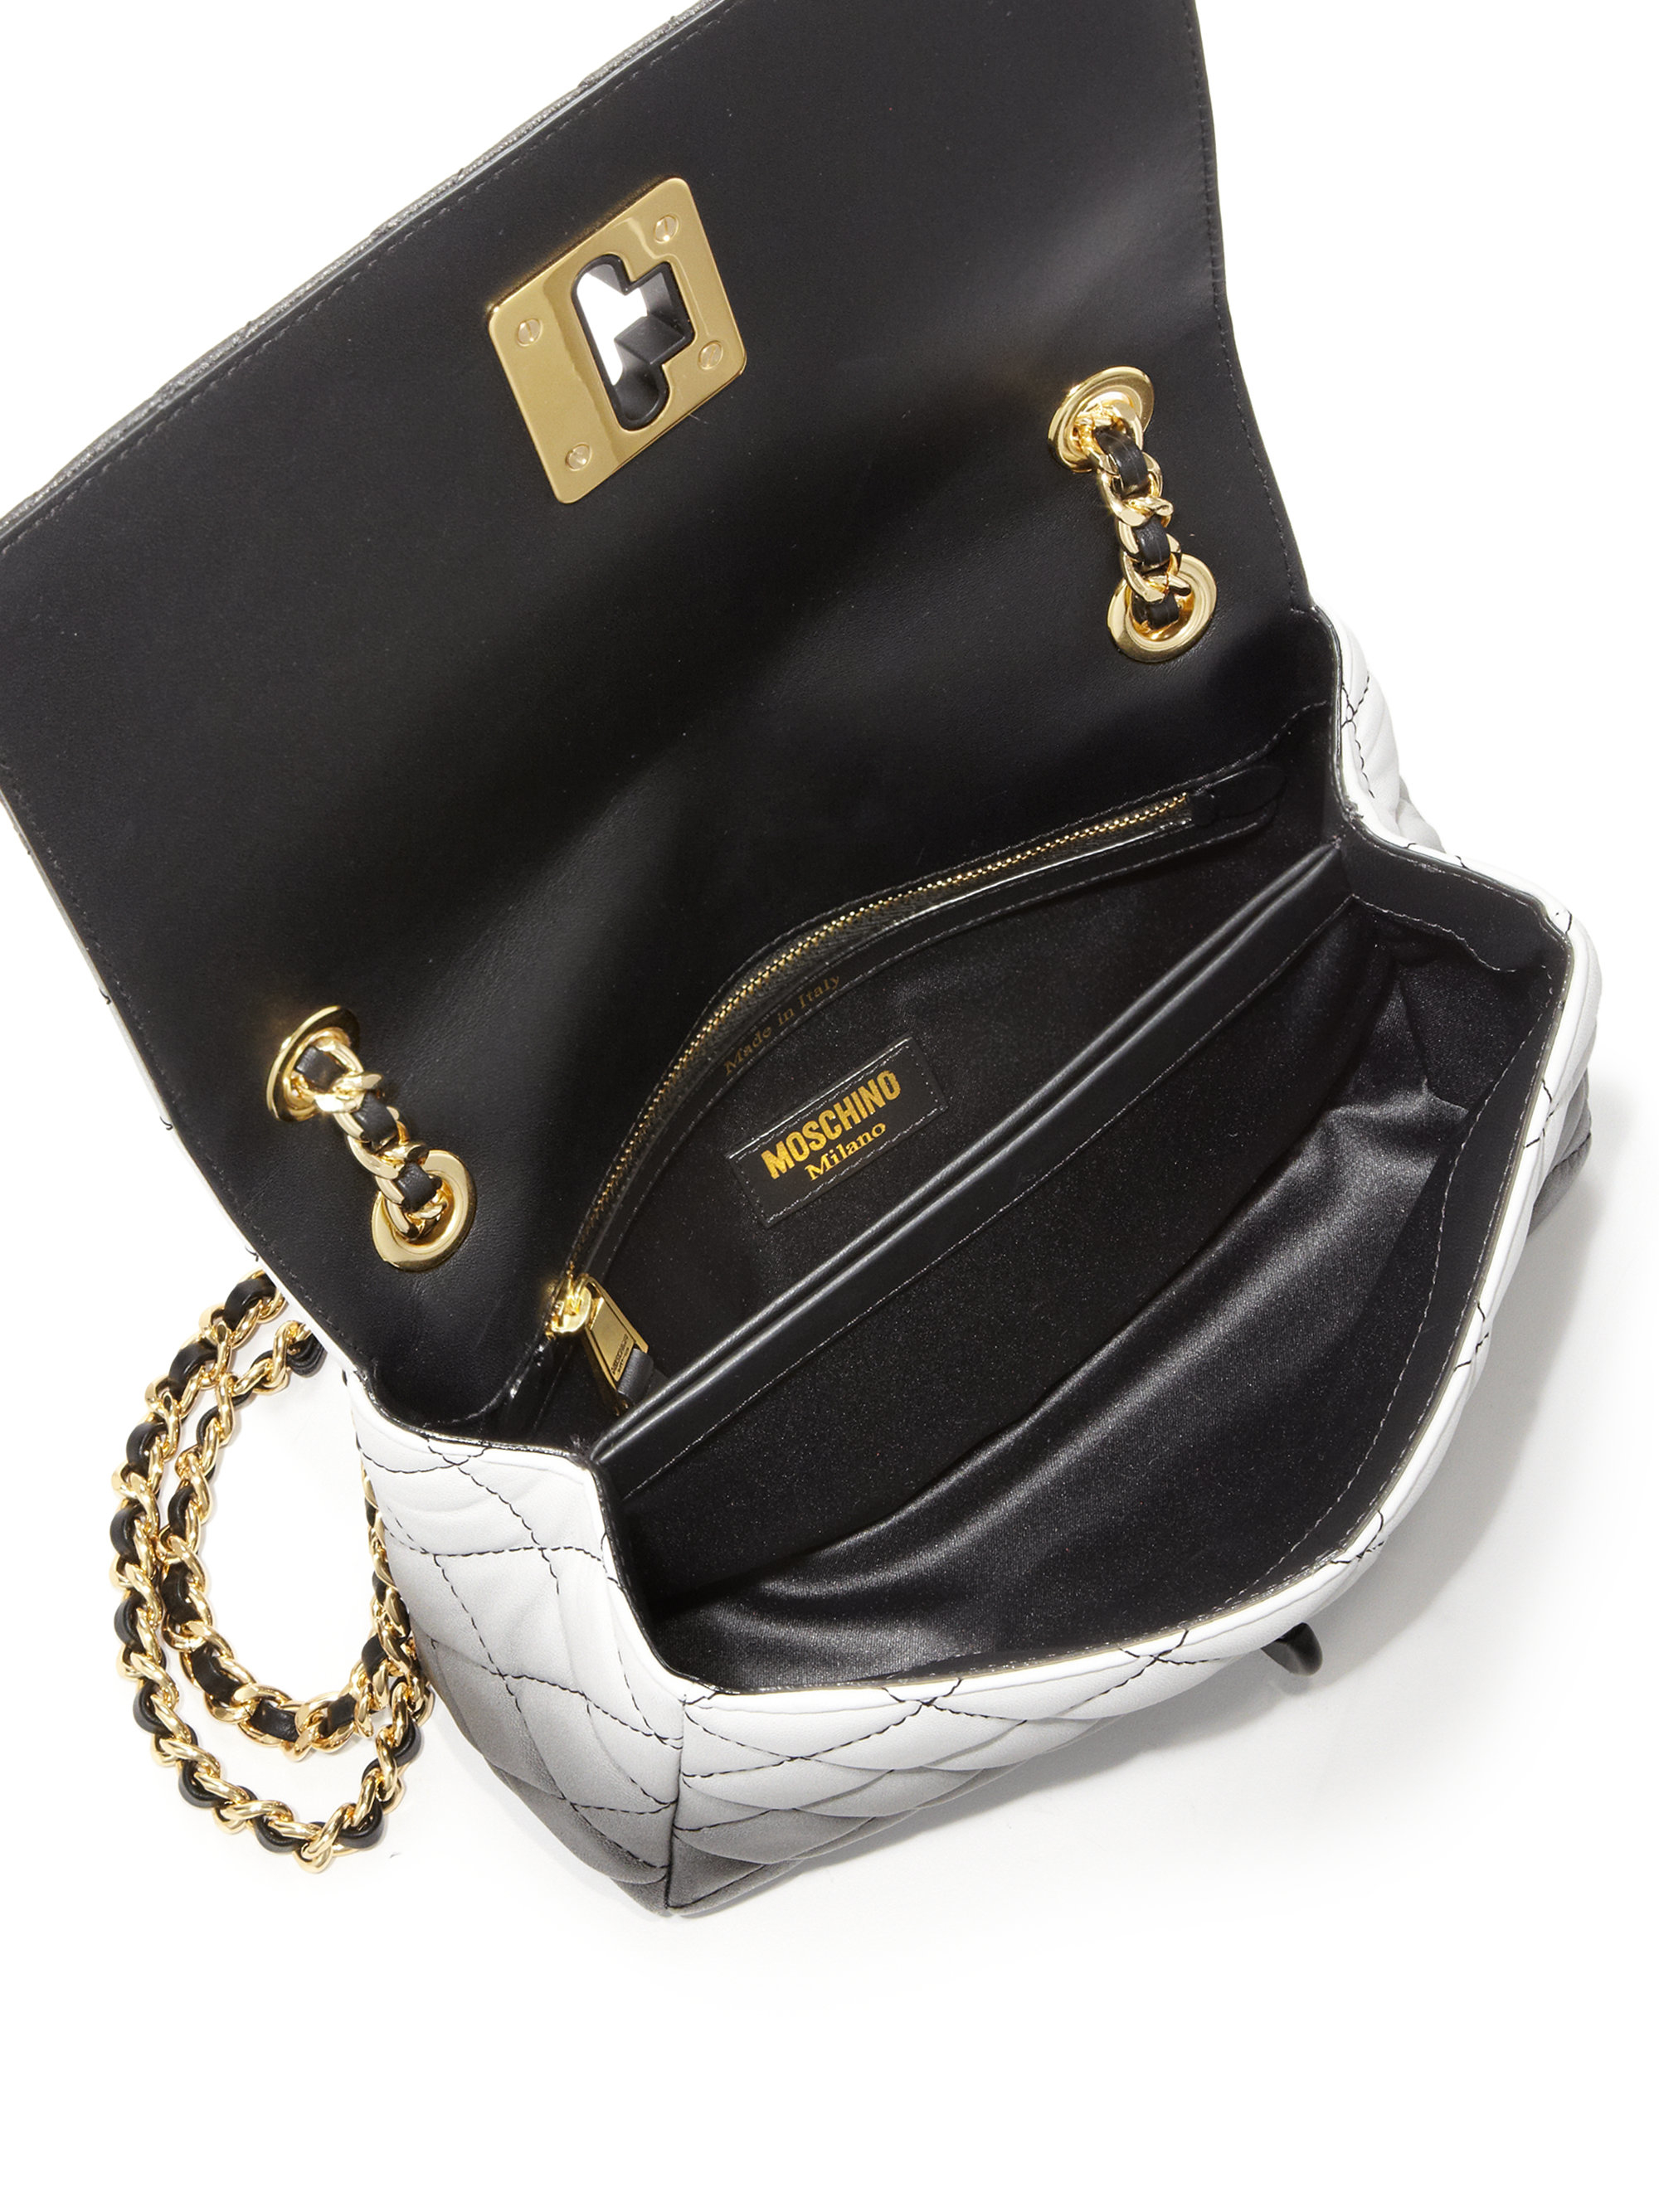 b2f906fab9 Moschino Small Dégradé Quilted Leather Shoulder Bag in Black - Lyst